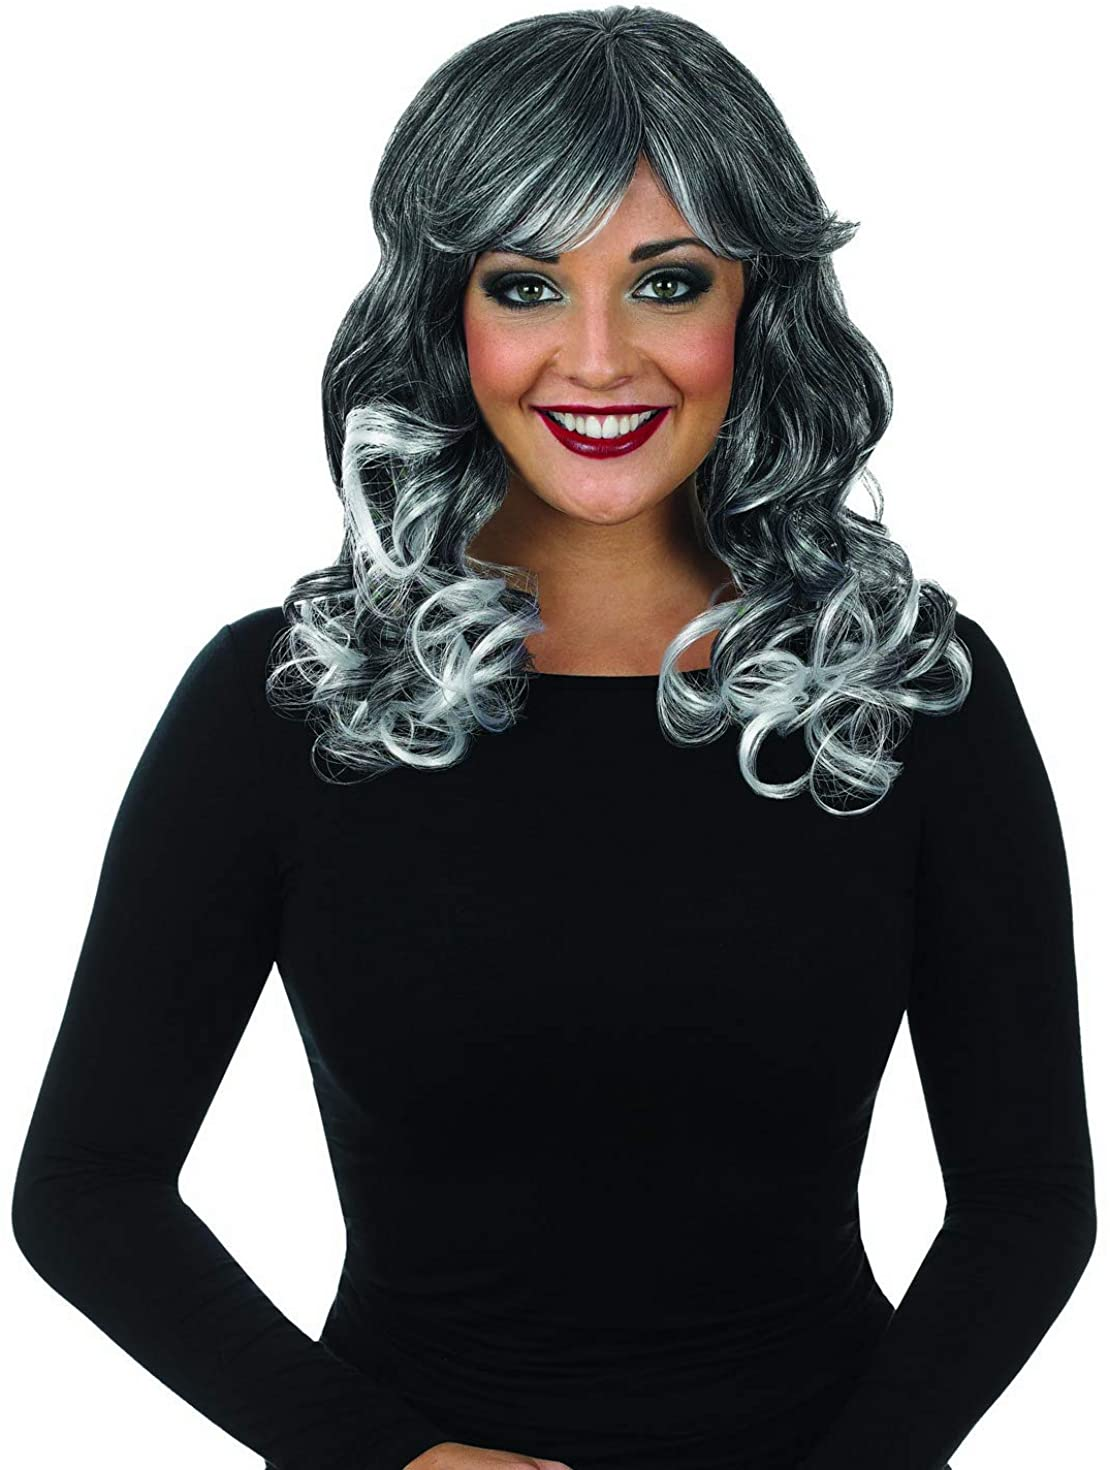 fun shack Womens Grey Curly Wig Adults Long Wavy Witch Hair Costume Accessory